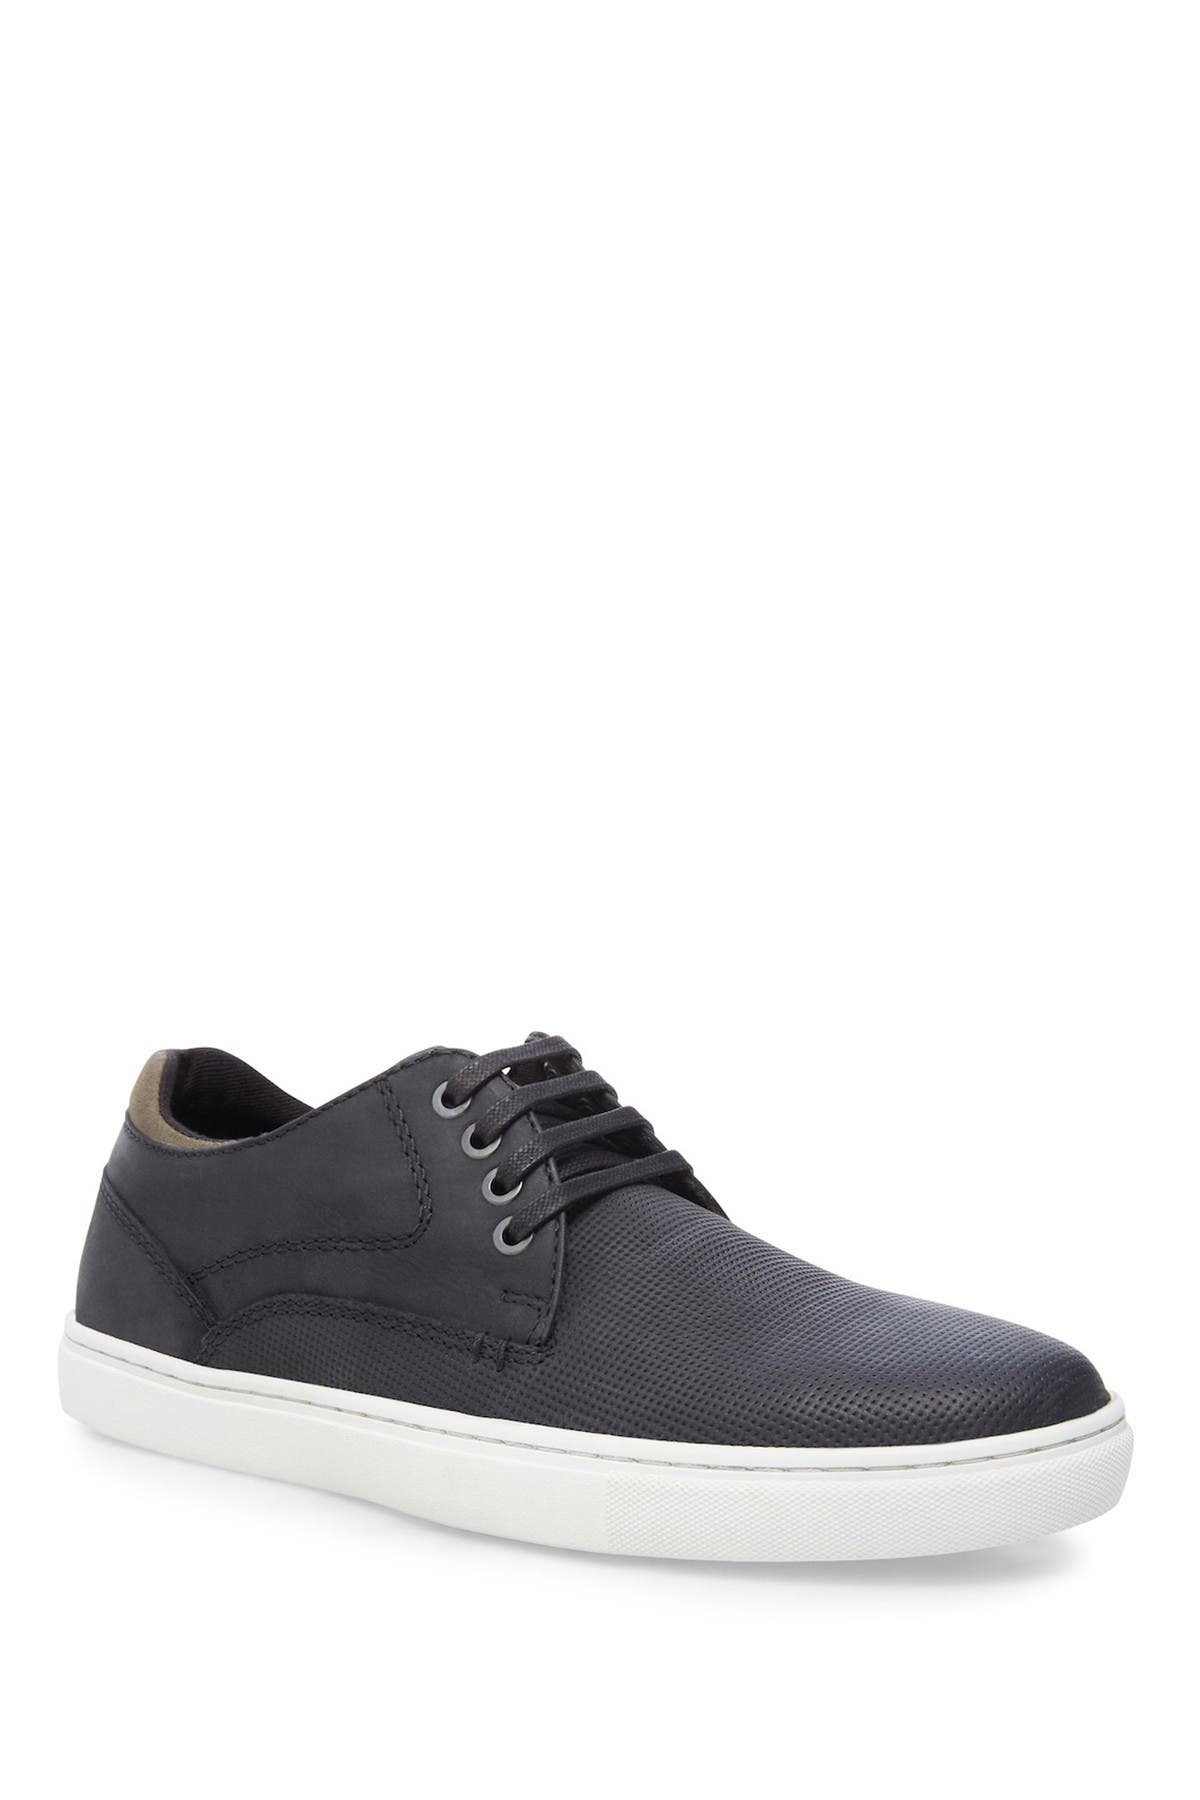 Image of Madden Codiy Leather Sneaker